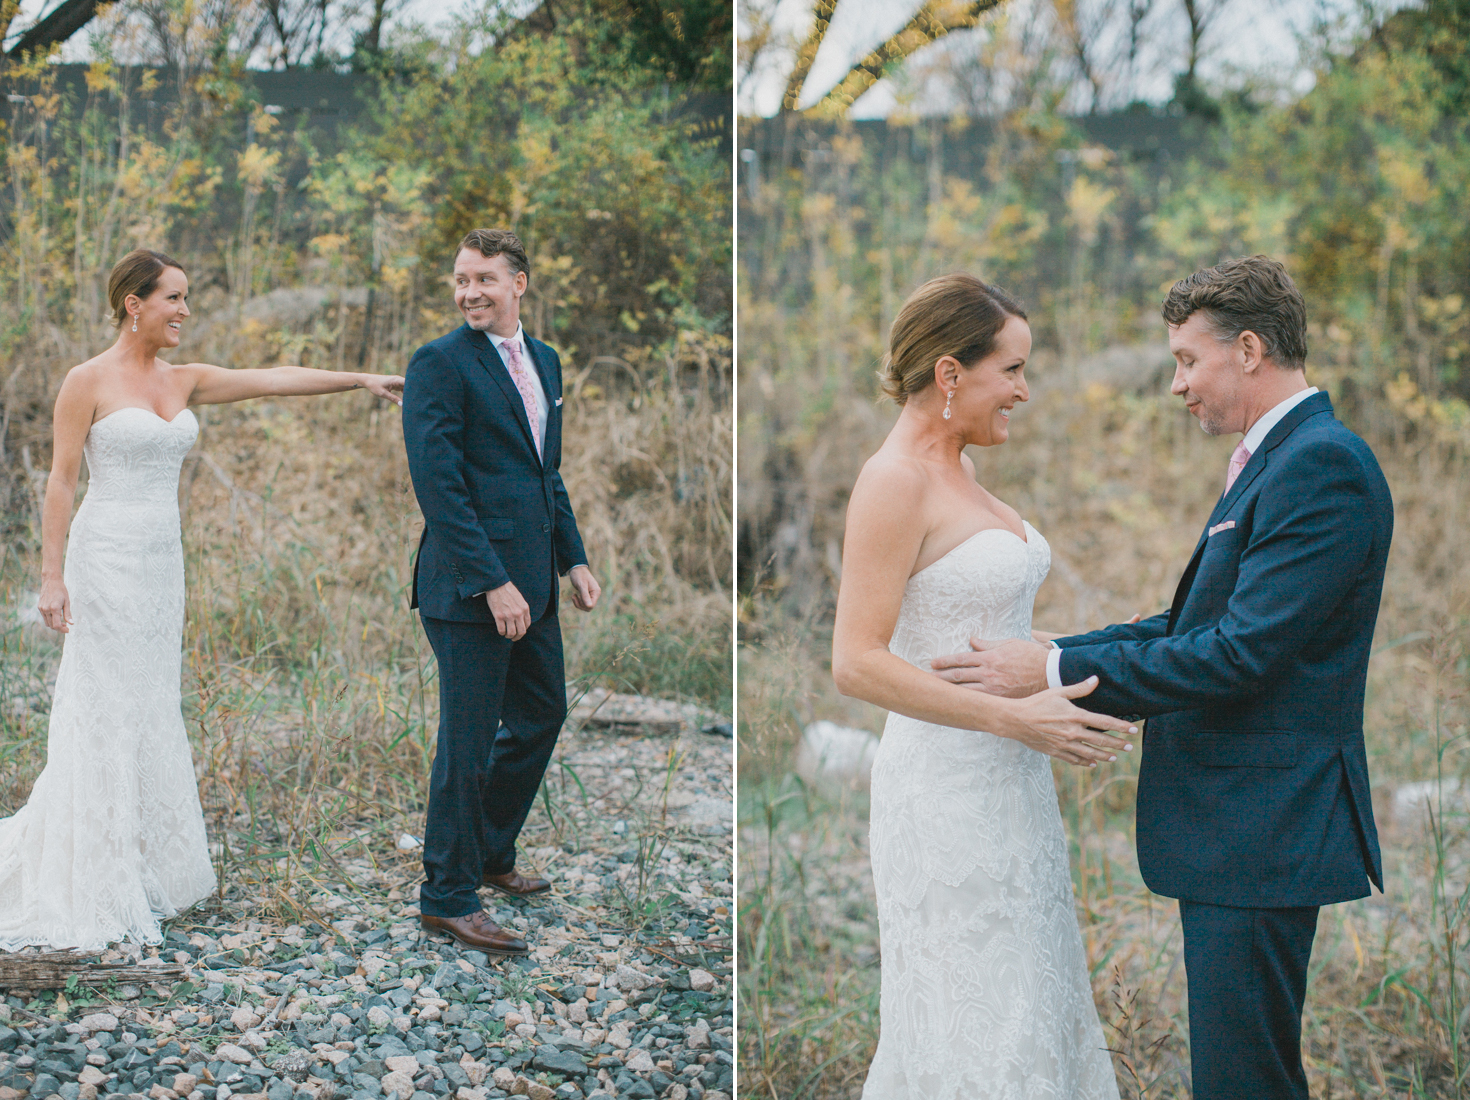 Hardin and Leigh Sullivan Wedding-9 side by side.jpg